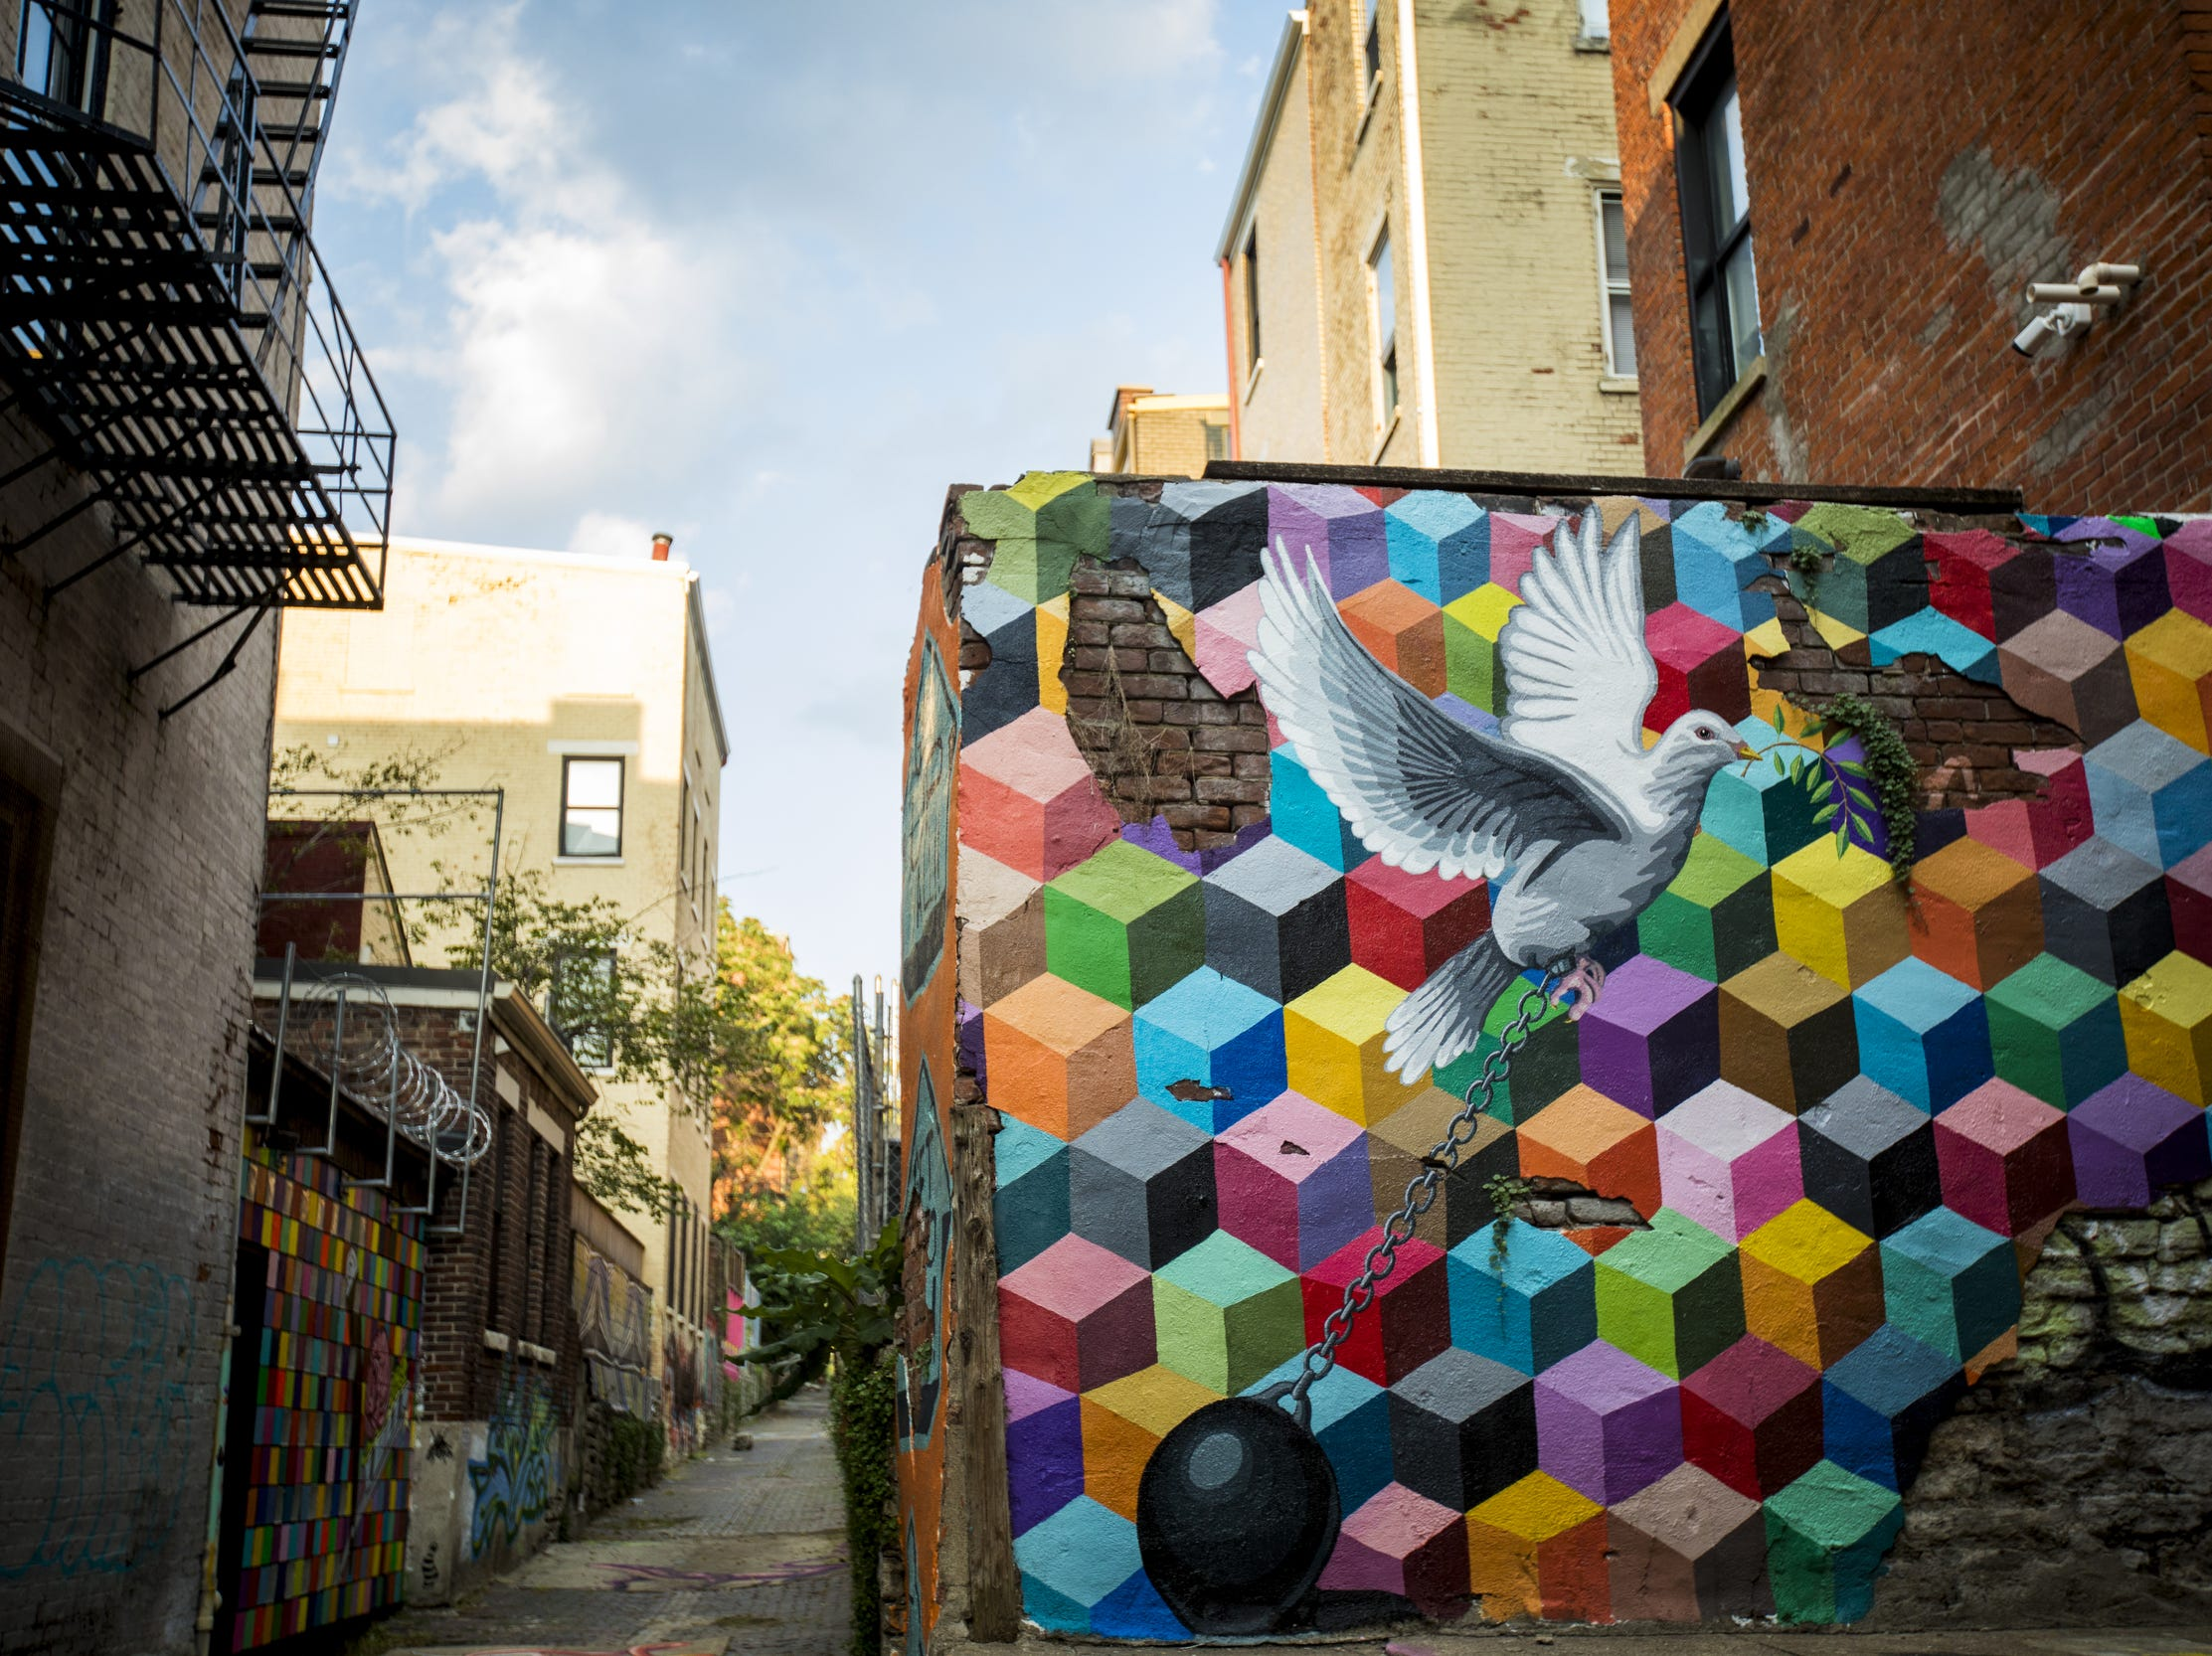 """Get up YALL!"" designed by Leon Reid IV is featured in Bolivar Alley in Pendleton as part of New Lines Alleyway Murals: Phase II by ArtWorks."